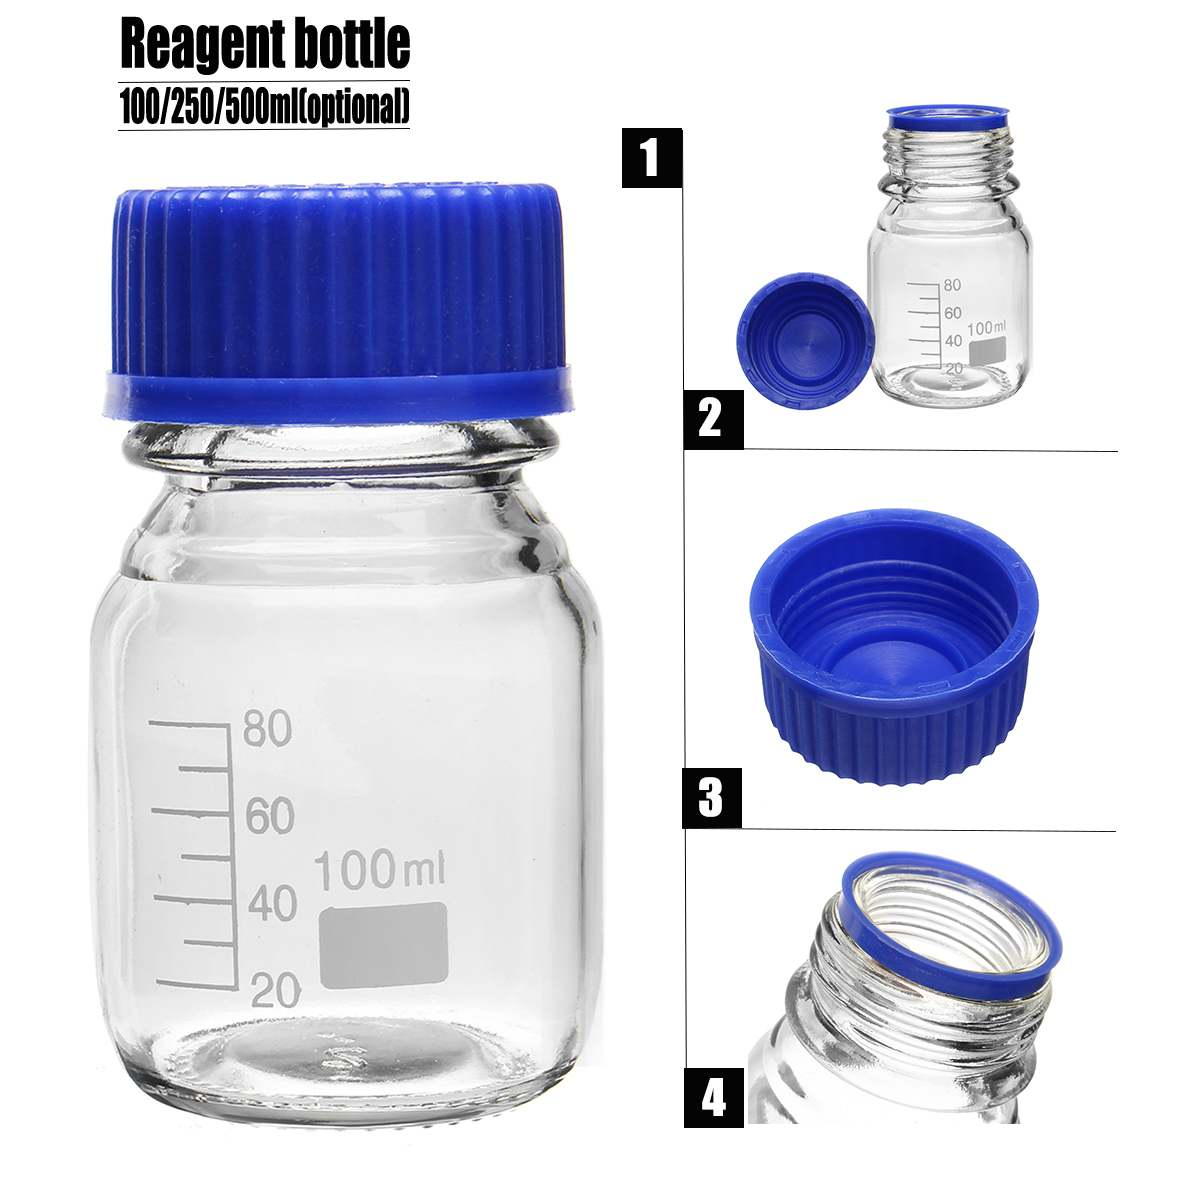 4pcs Glass Reagent Bottle With Blue Screw Cover Cap 100ml Graduation Sample Vials Plastic Lid School Supplies Lab Equipments